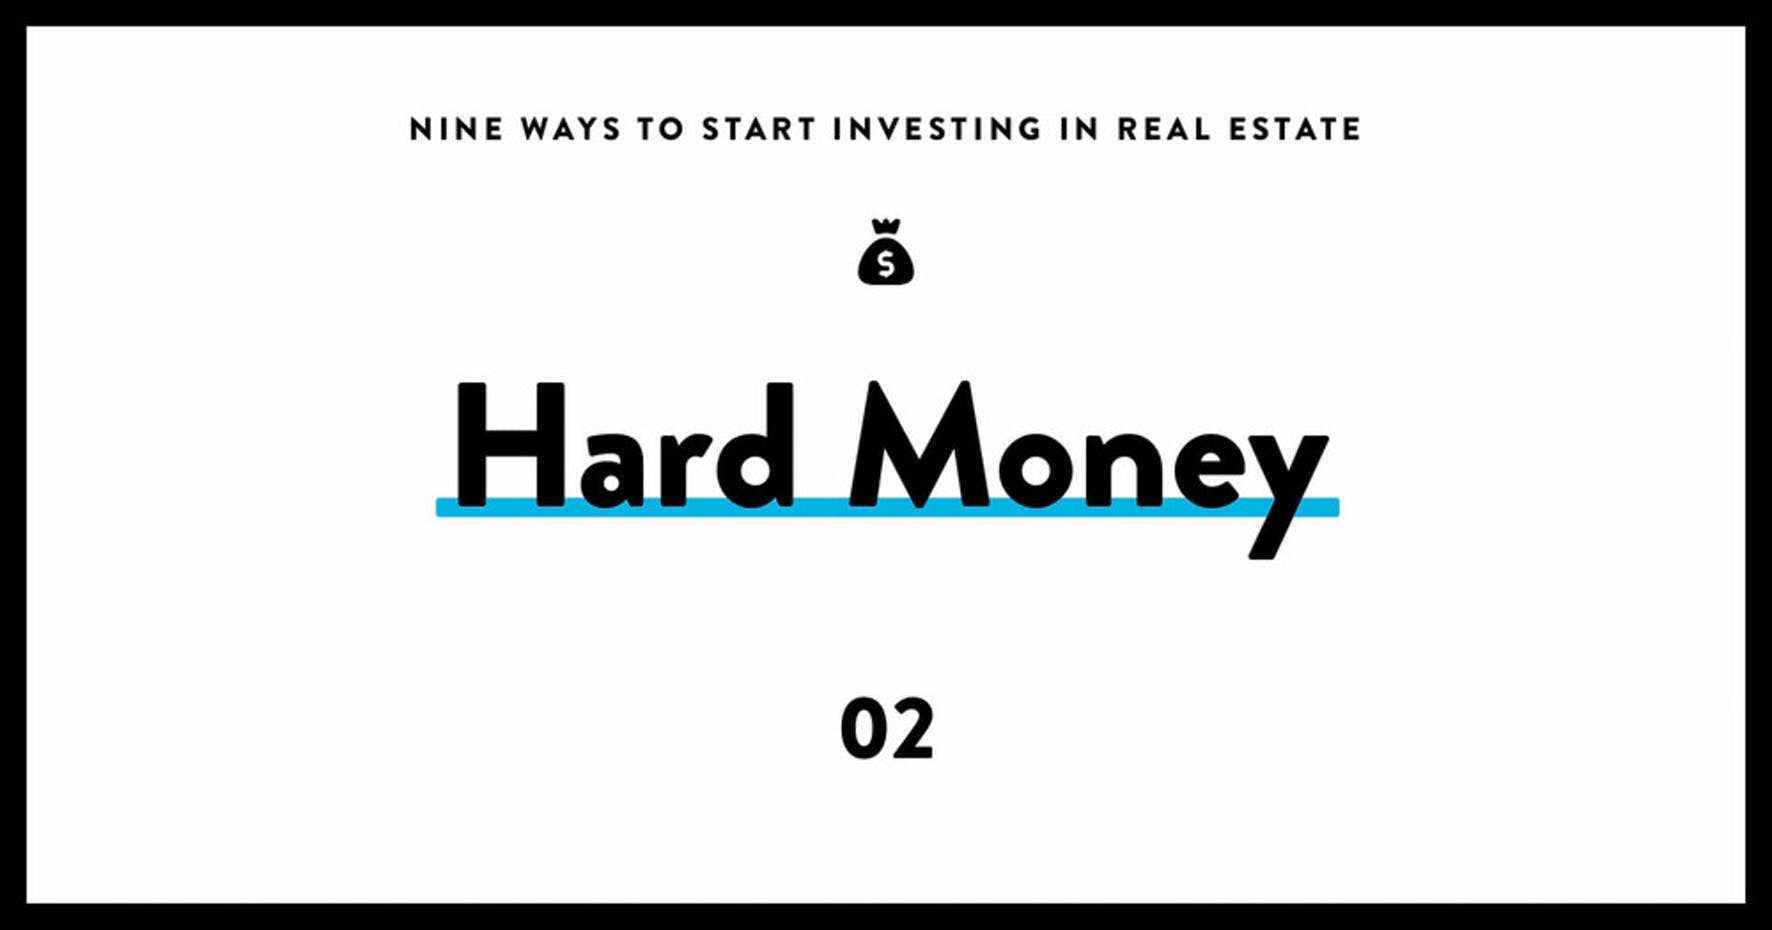 Start investing in real estate 02 hard money